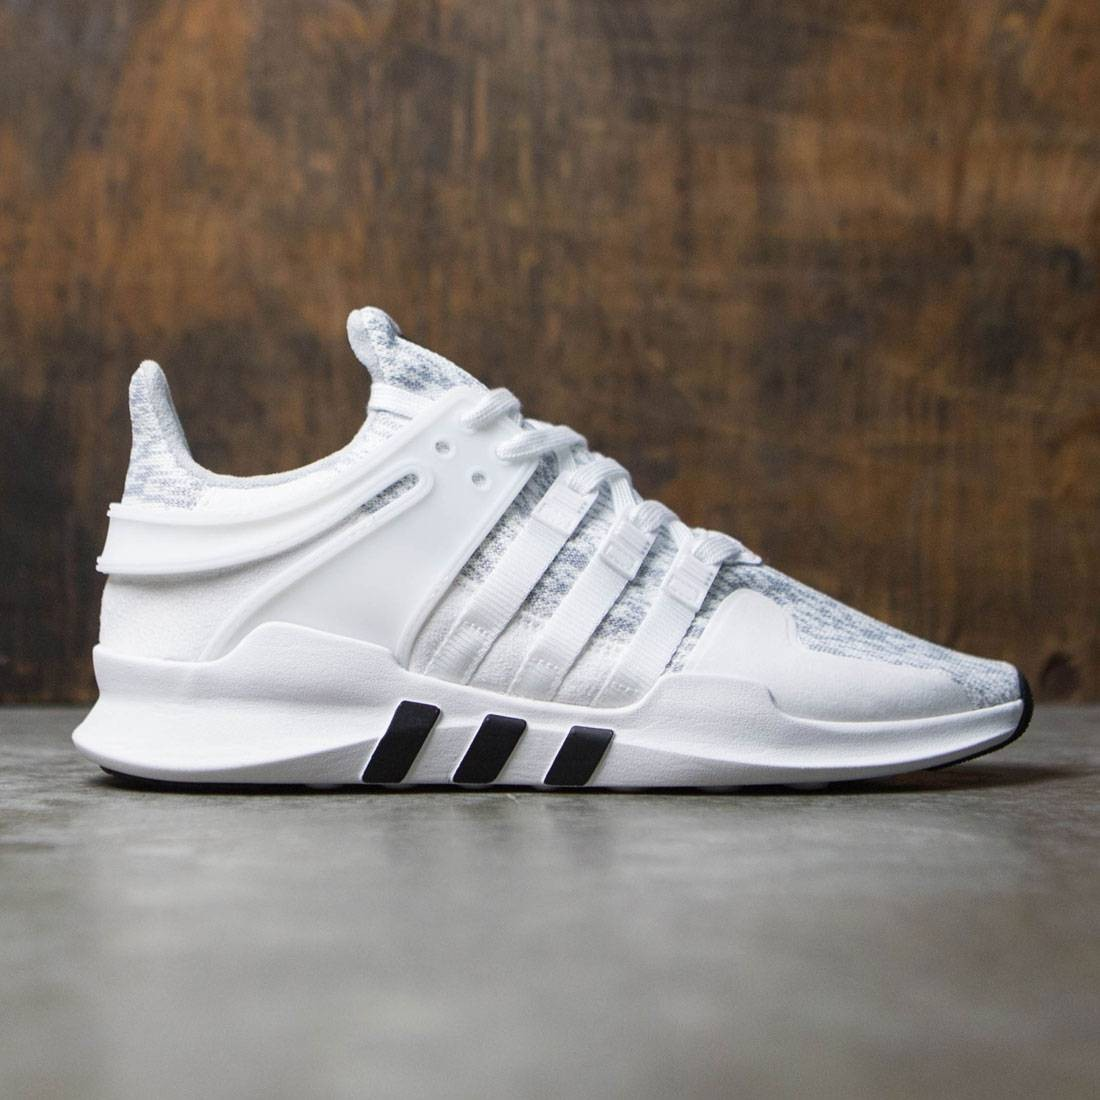 premium selection 4e42e 0c27e Adidas Men EQT Support ADV (gray / clear onix / footwear white / core black)